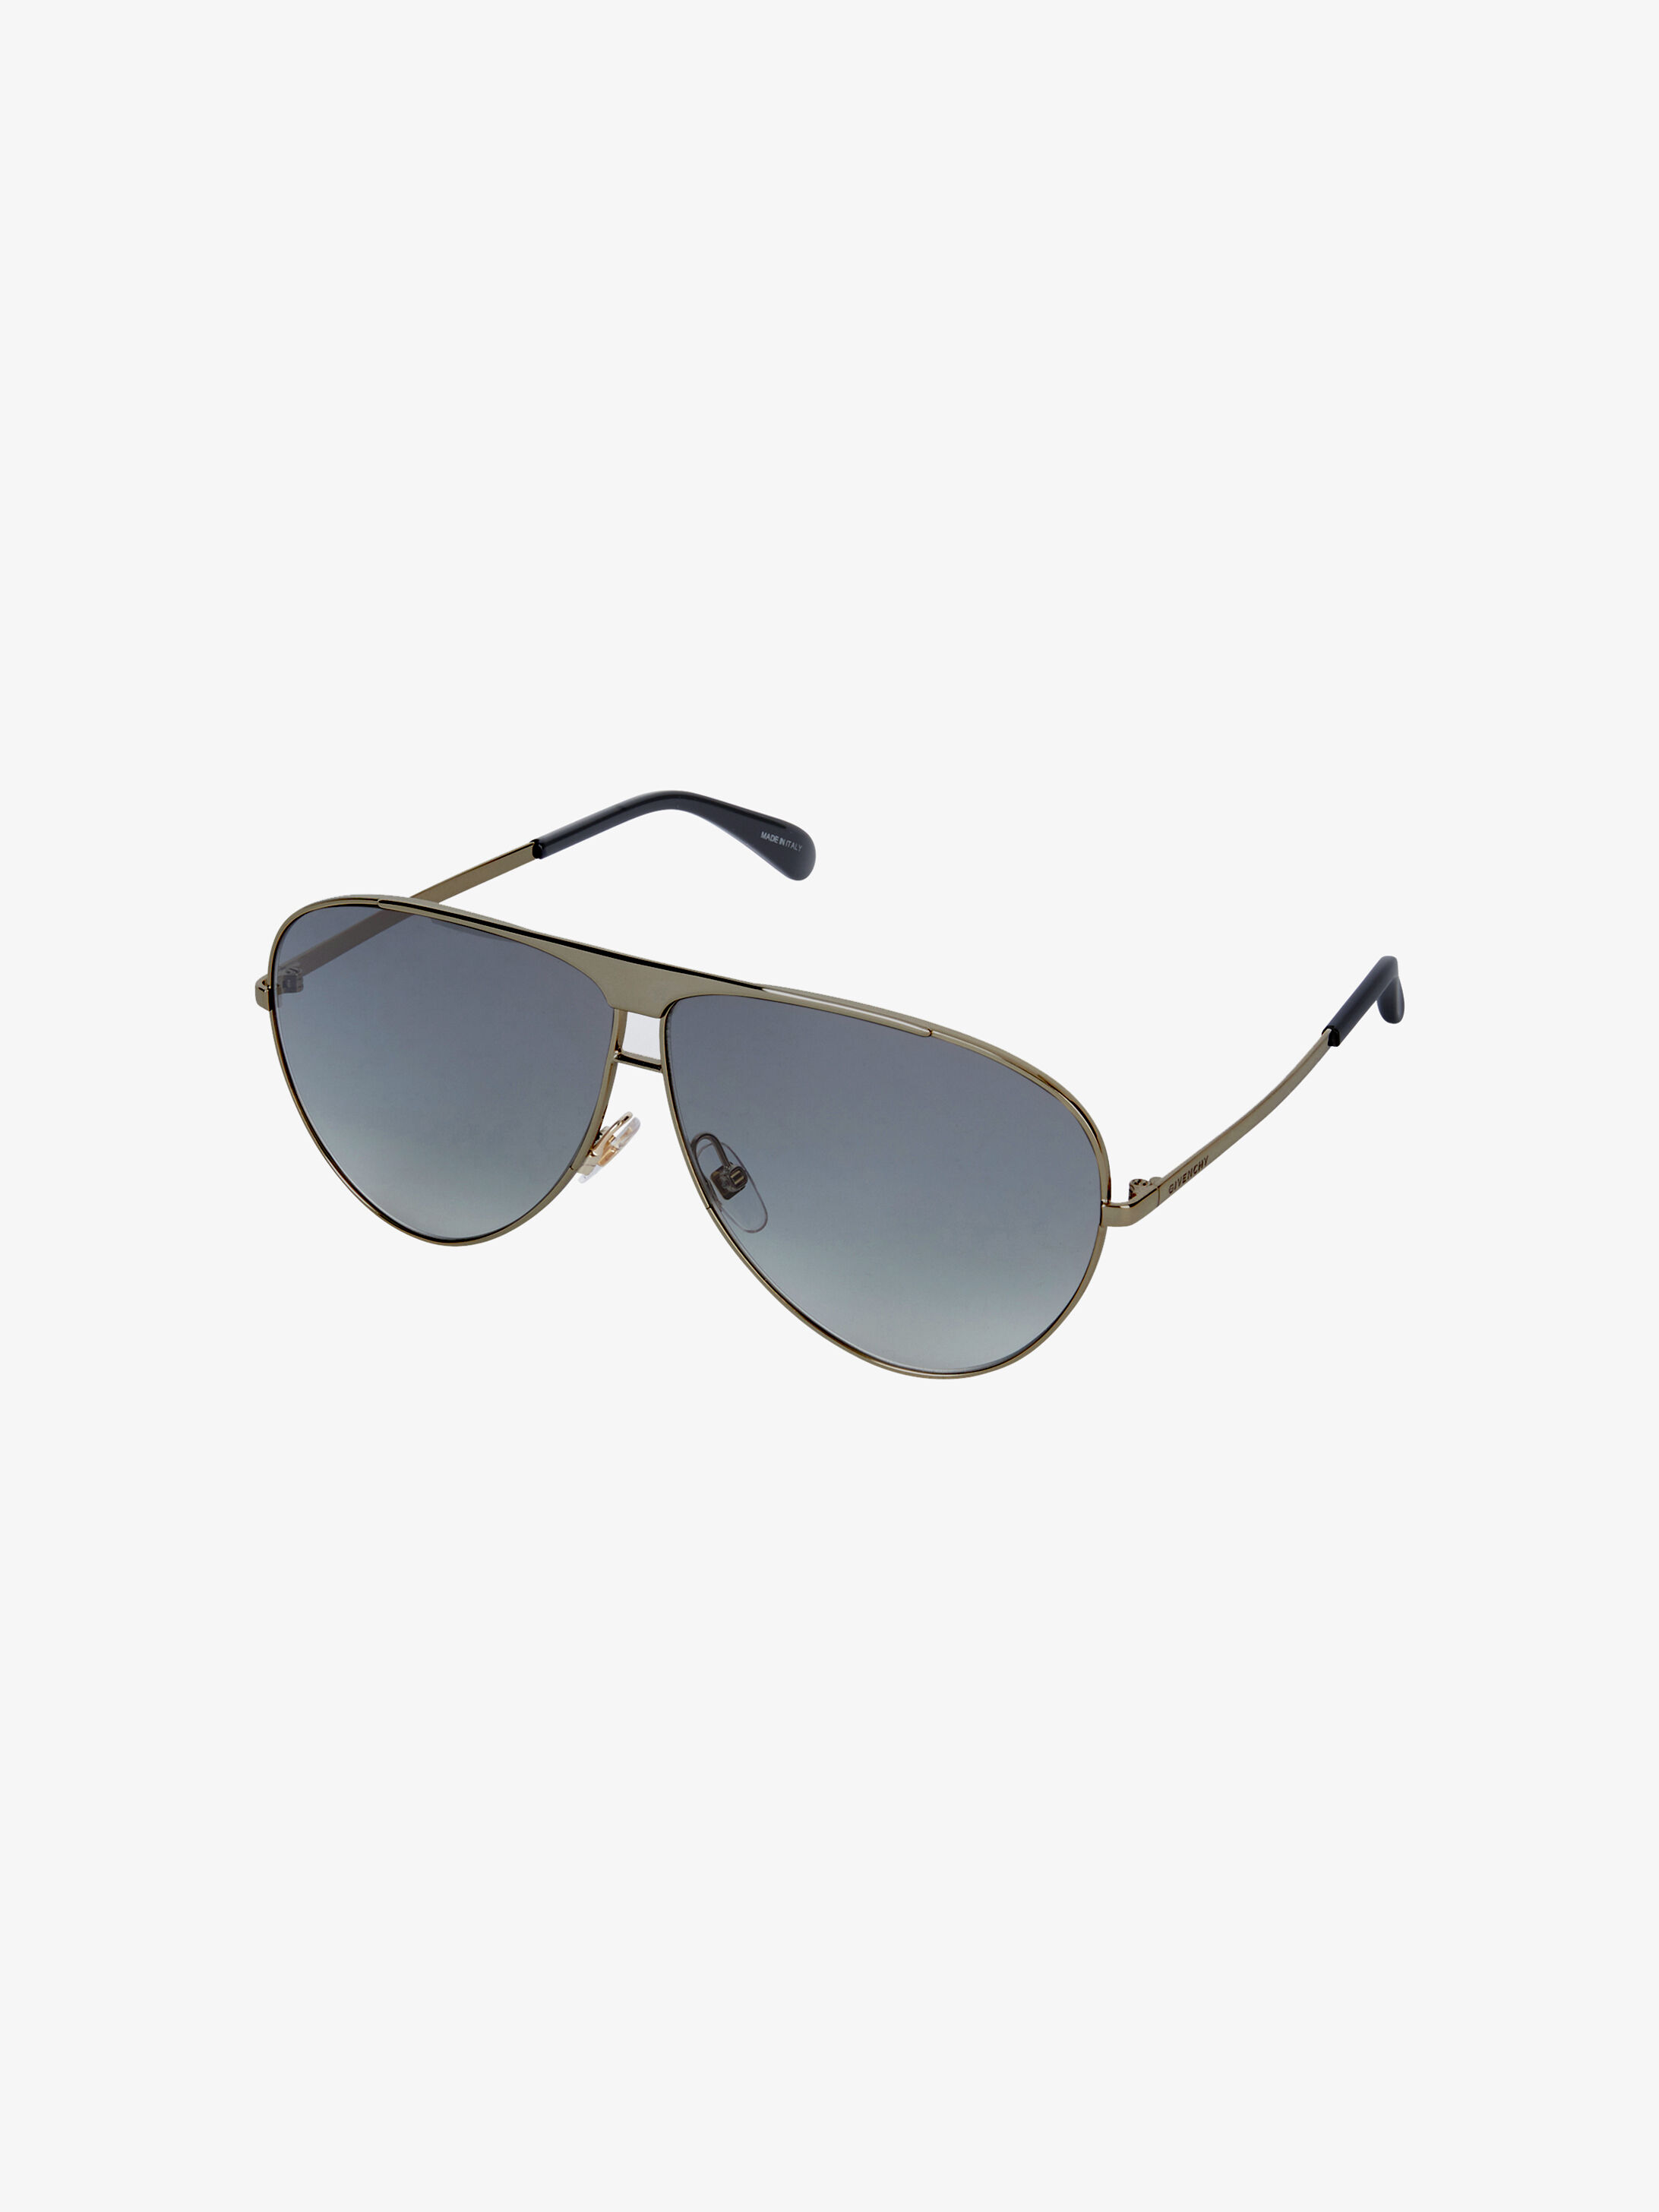 cc93f7926588f Women s Sunglasses collection by Givenchy.